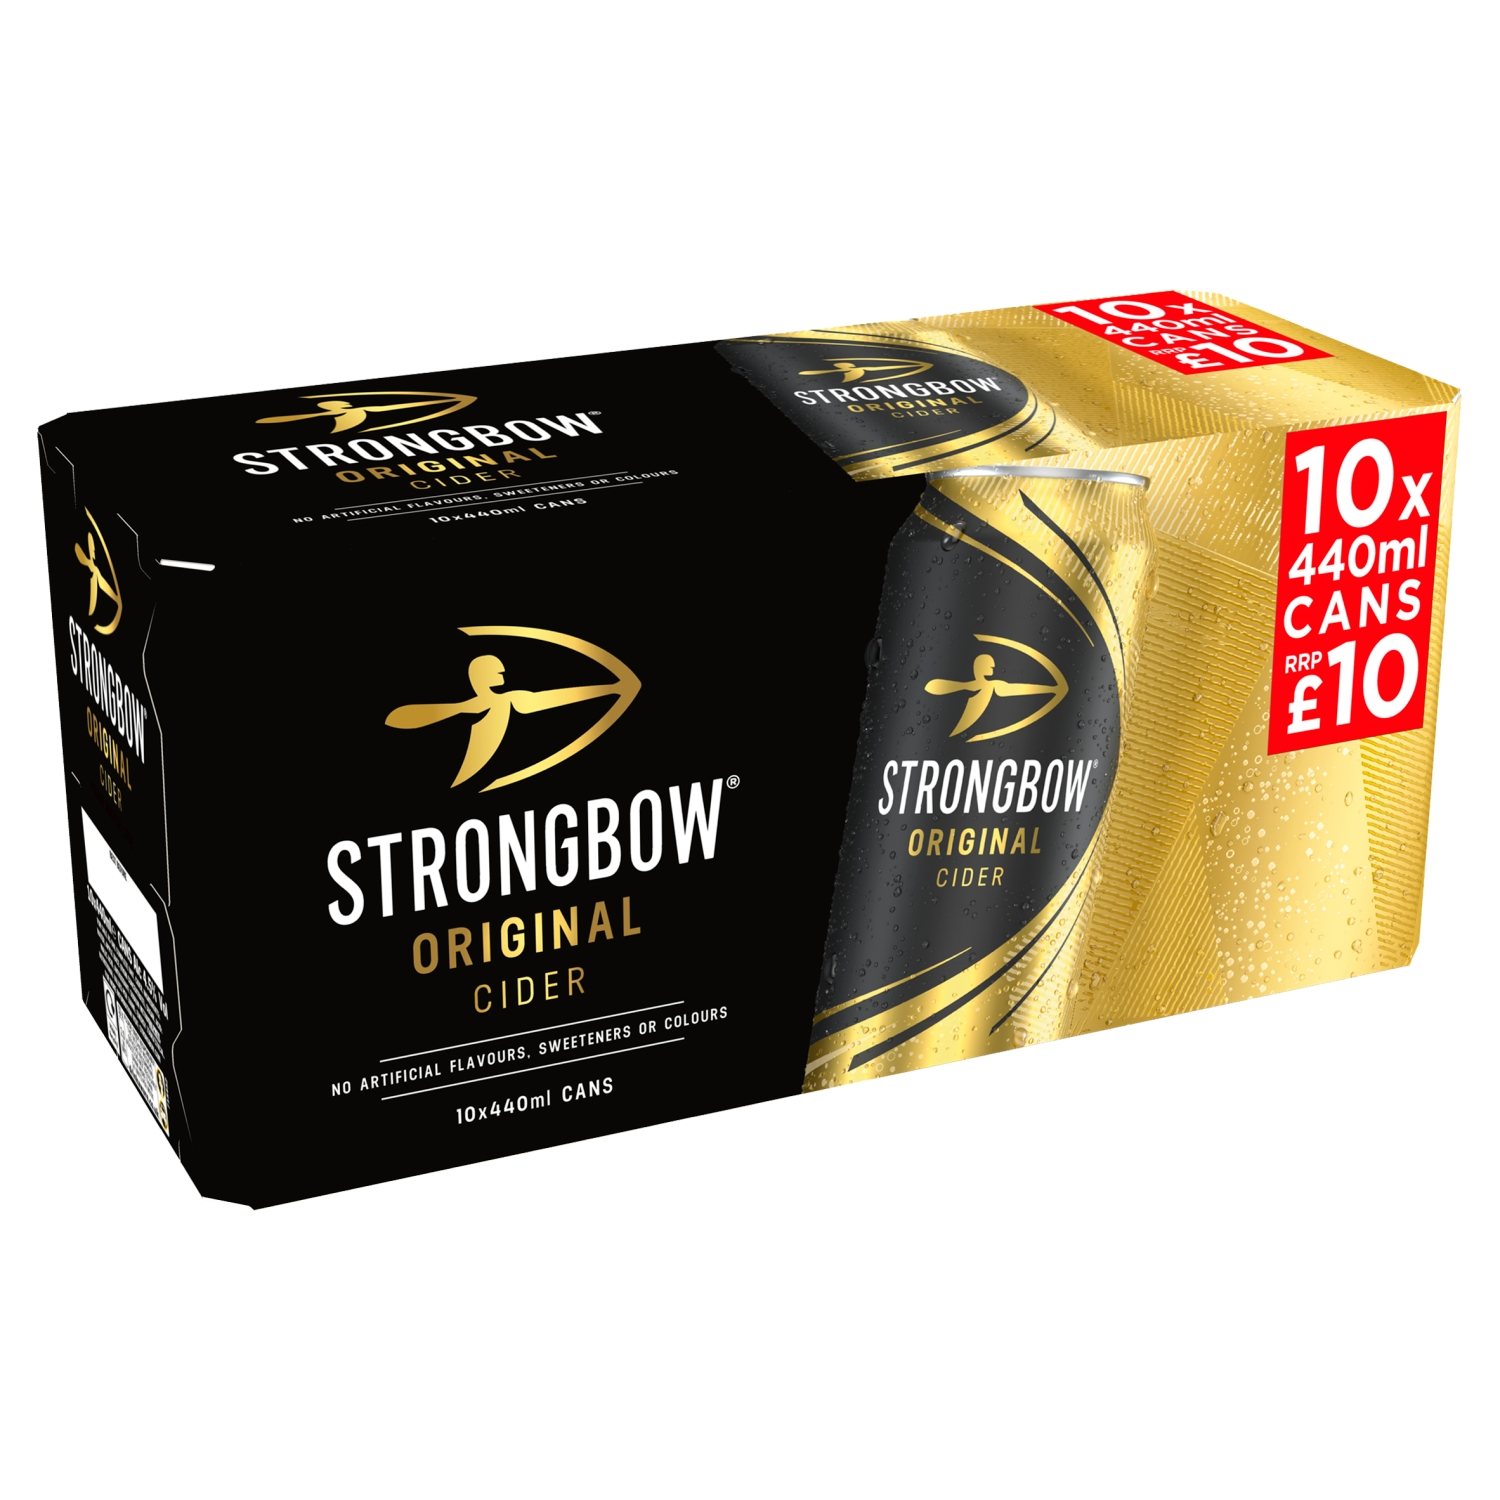 Strongbow Original Cider 10 x 440ml Cans